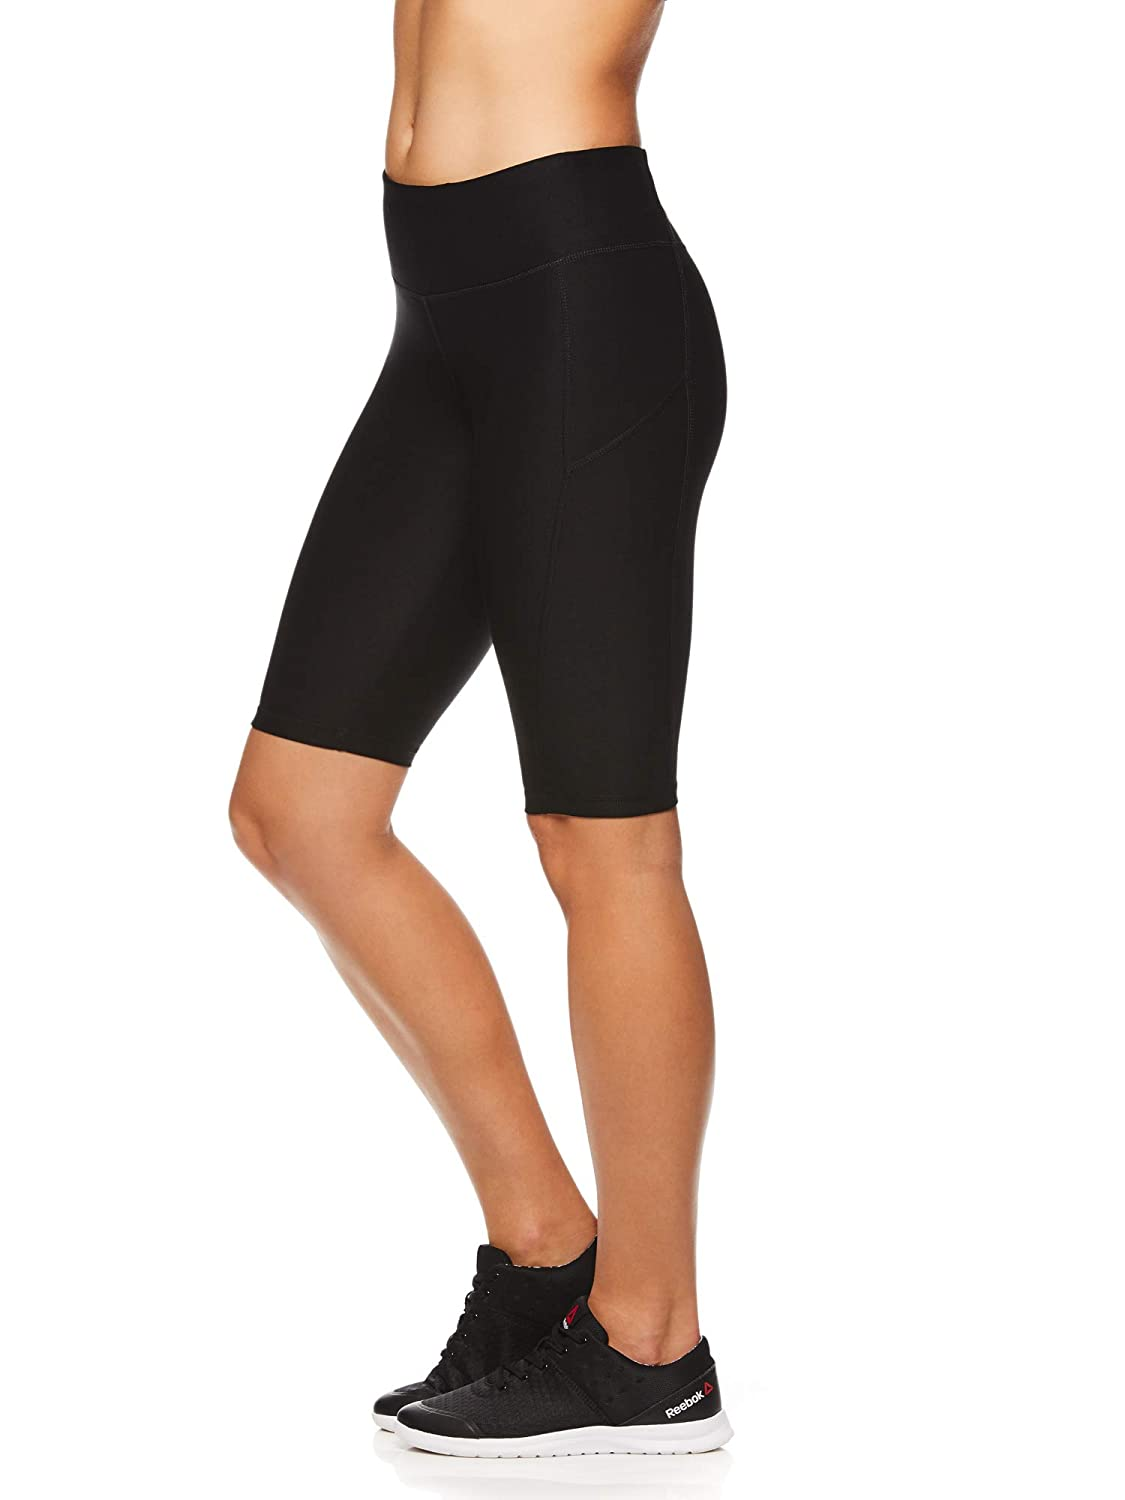 Small Quick Training Short Black High Waisted Performance Workout Short Reebok Womens Compression Running Shorts